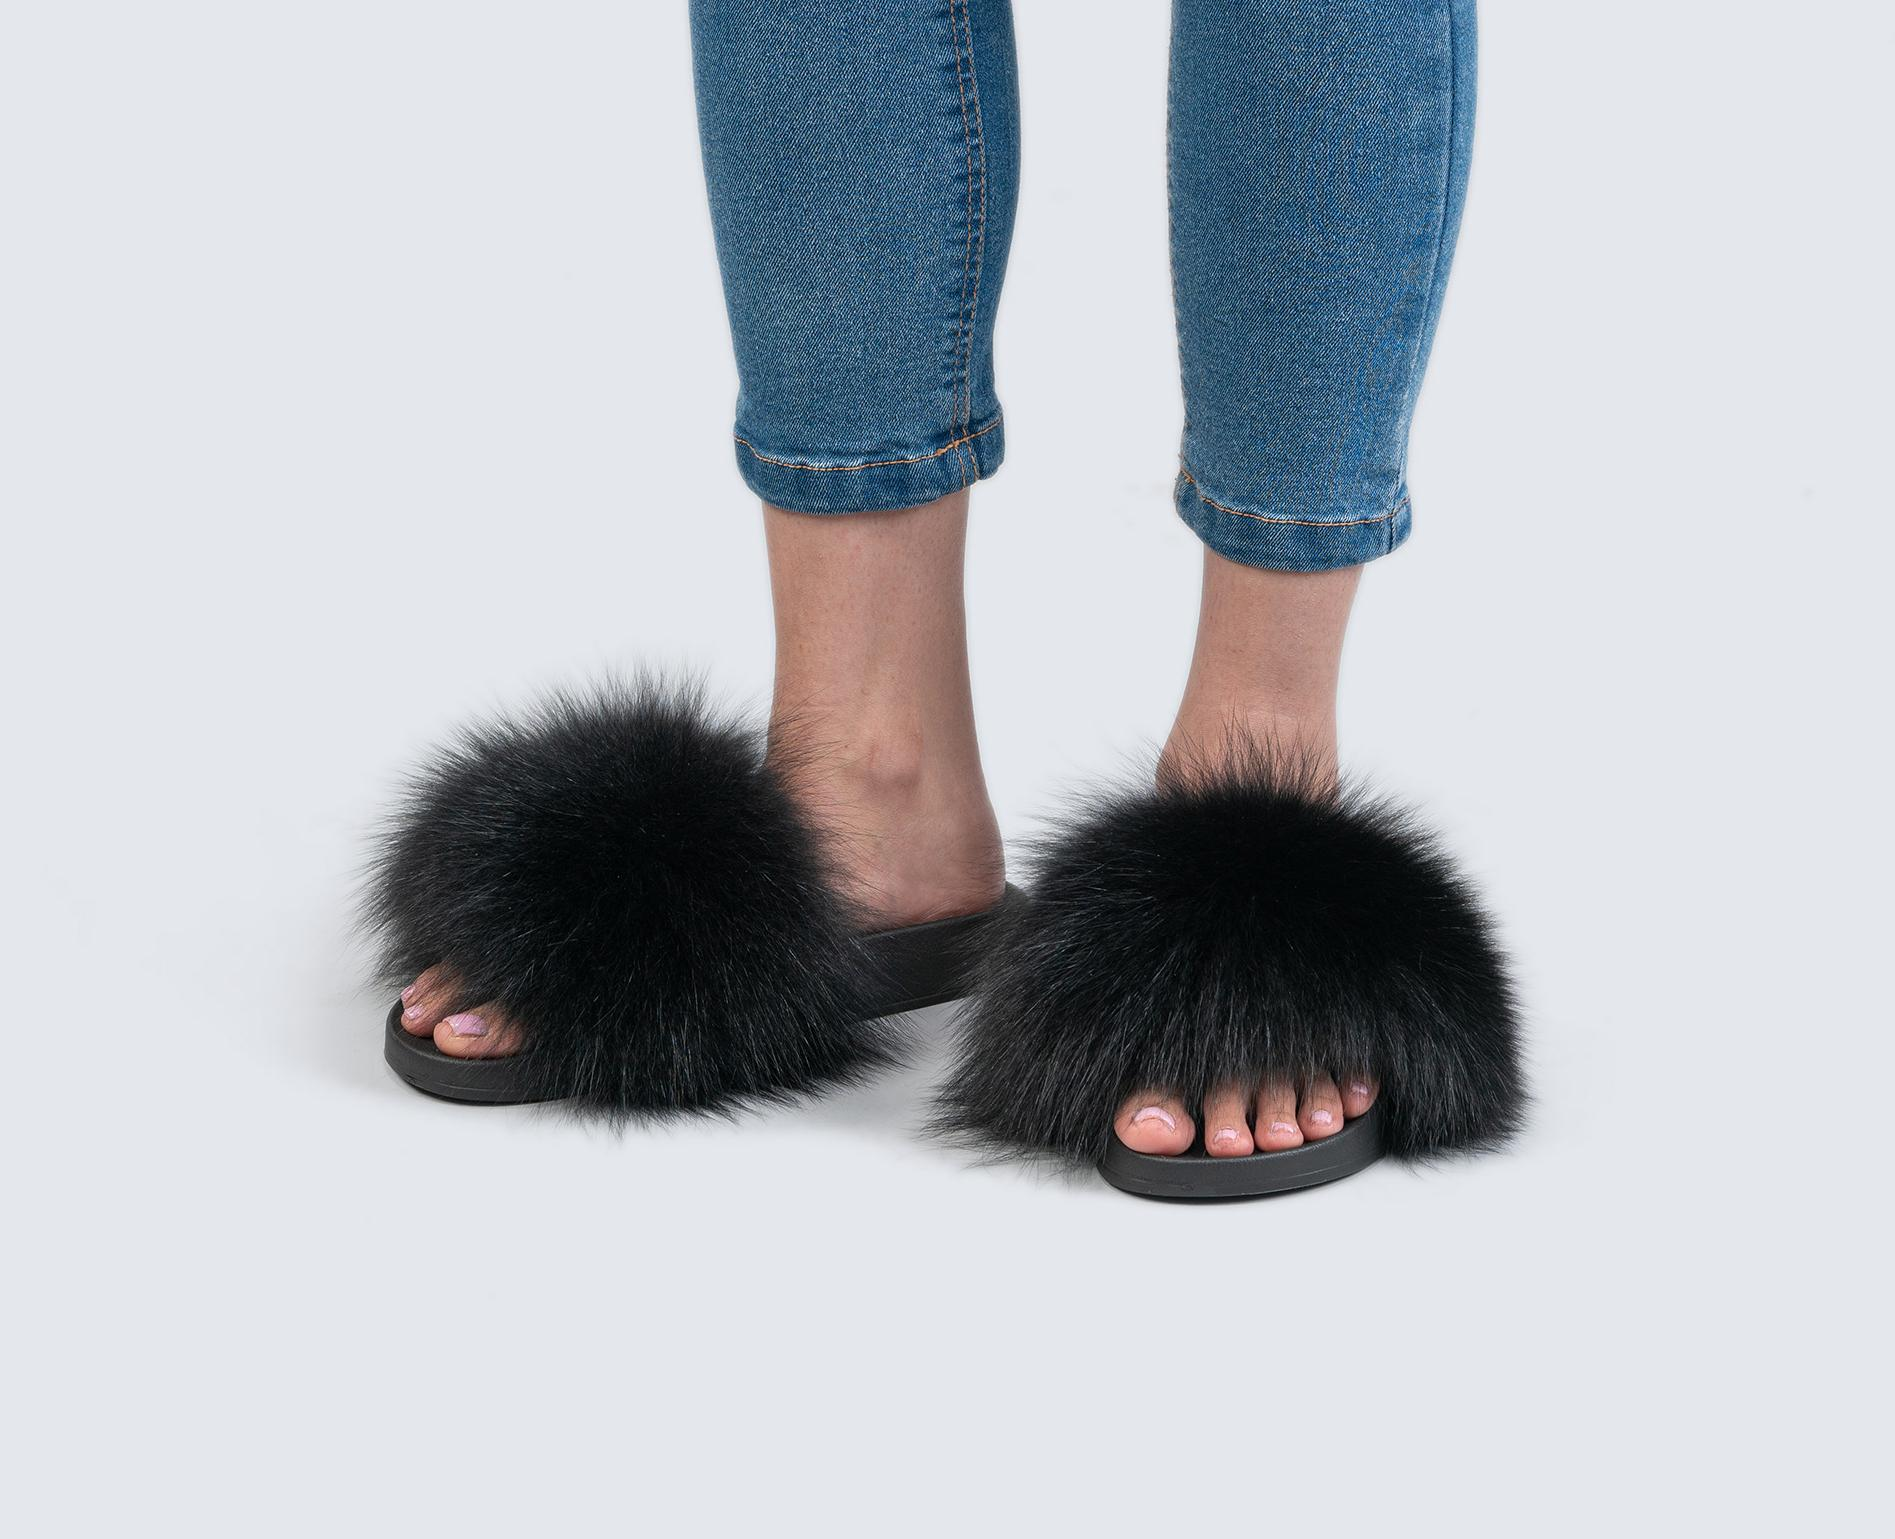 ae9297bca28 Black Fur Slides - Made of 100% Real Fur - All Sizes Available.